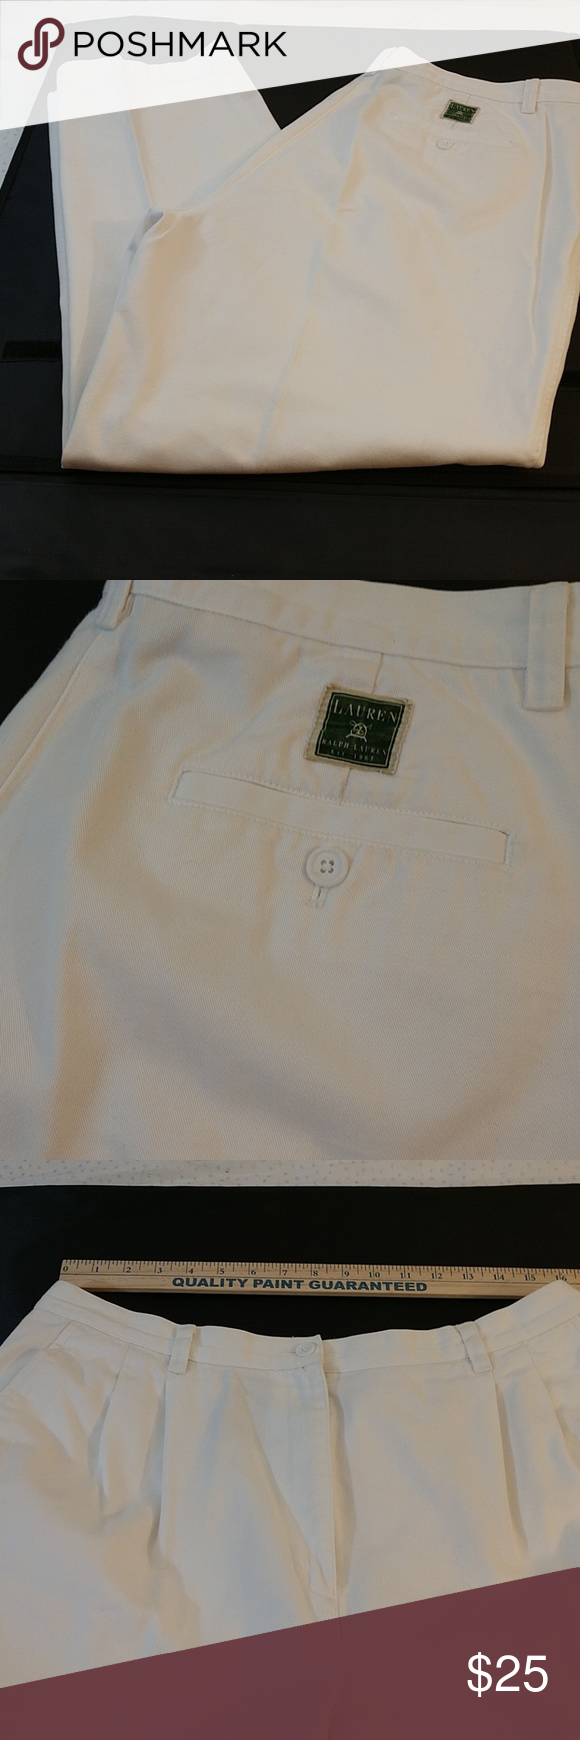 White Slacks Pleated Front White Slacks. See pics for measurements. Approx 28 inseam. Very clean. No spots, rips, stains, holes. MInimal signs of wear. Ralph Lauren Pants Trousers #whiteslacks White Slacks Pleated Front White Slacks. See pics for measurements. Approx 28 inseam. Very clean. No spots, rips, stains, holes. MInimal signs of wear. Ralph Lauren Pants Trousers #whiteslacks White Slacks Pleated Front White Slacks. See pics for measurements. Approx 28 inseam. Very clean. No spots, rips, #whiteslacks